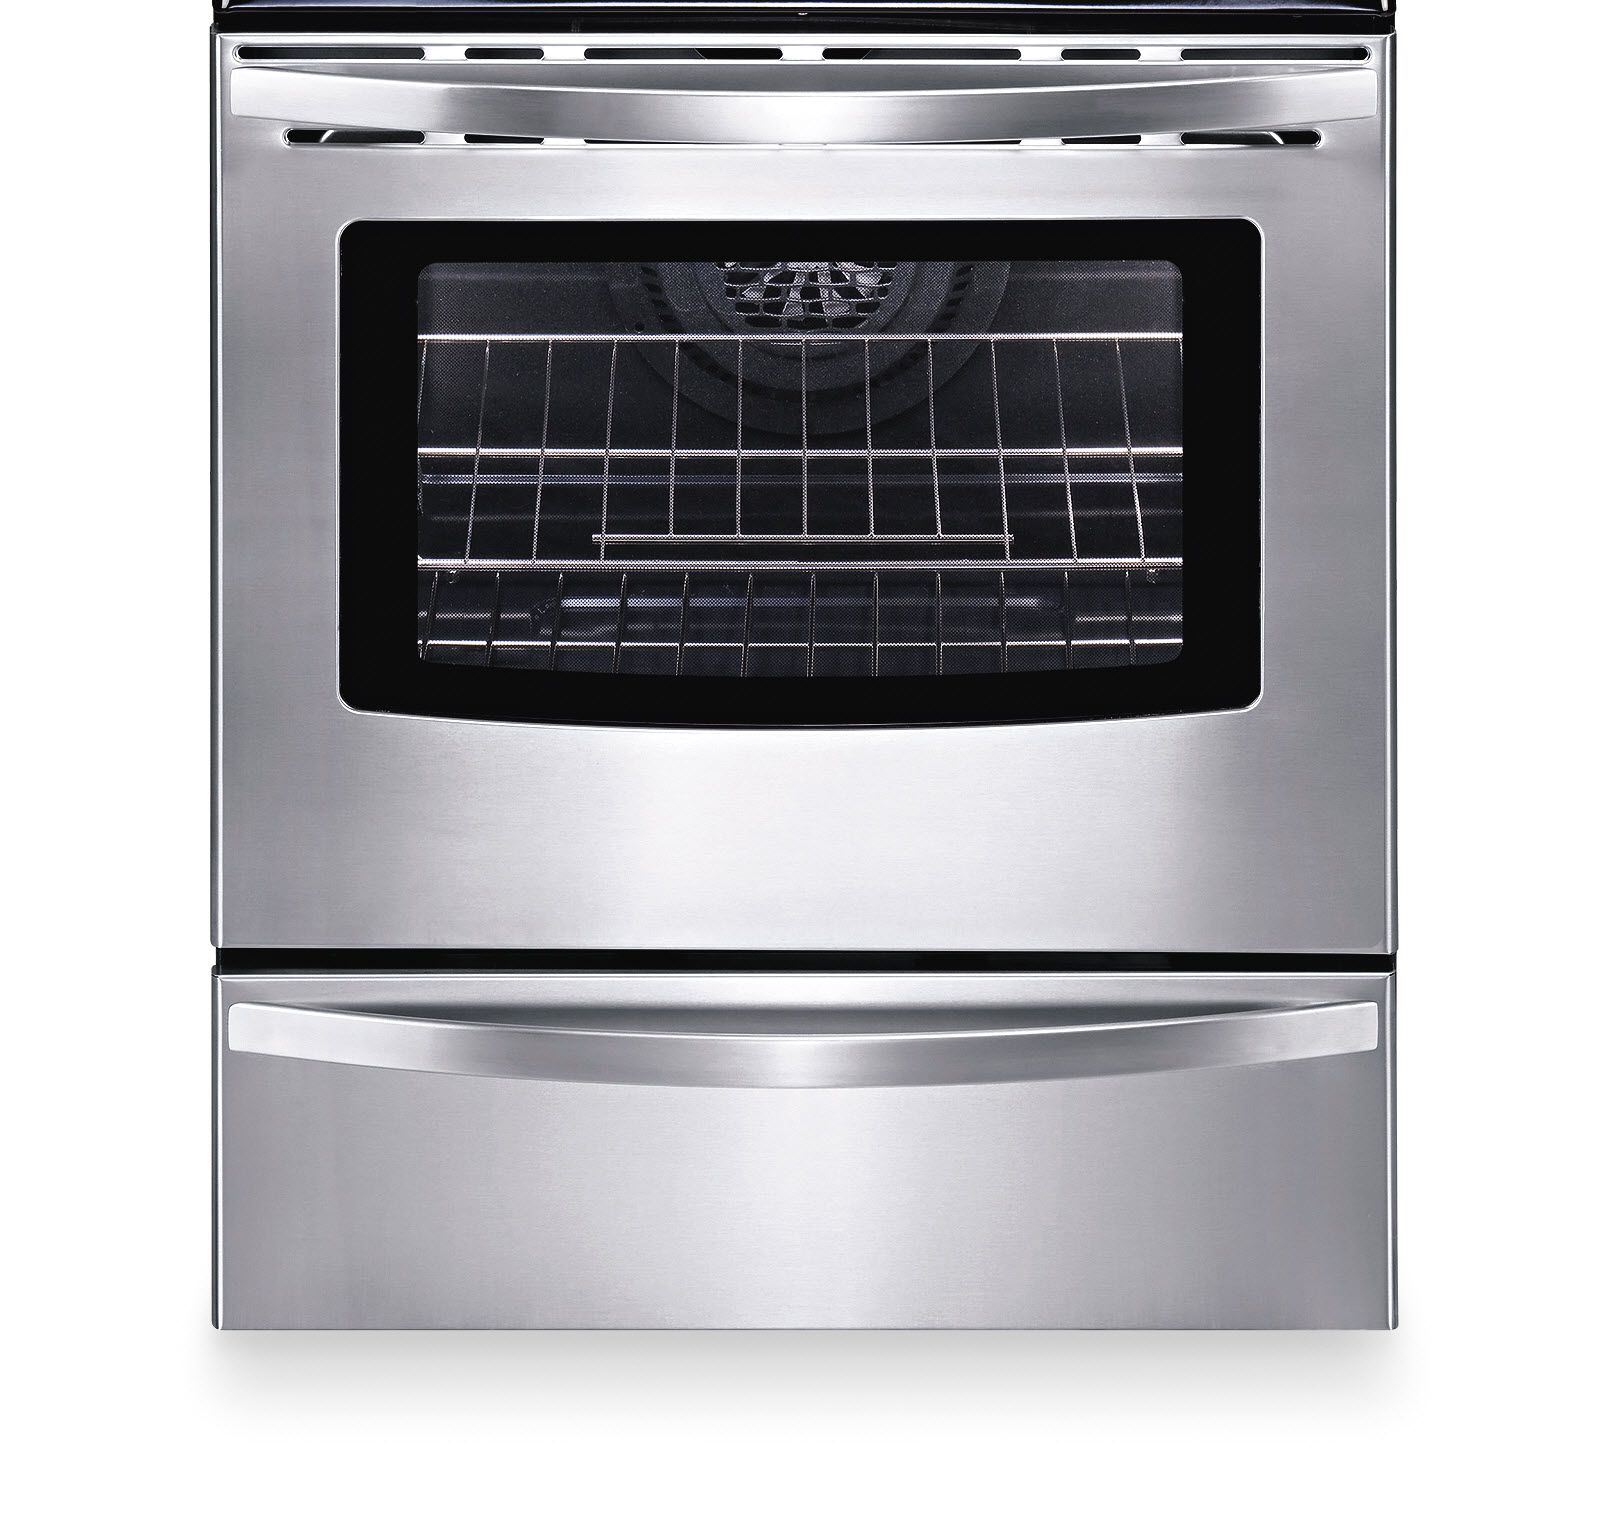 Kenmore 5.7 cu. ft. Electric Range - Stainless Steel